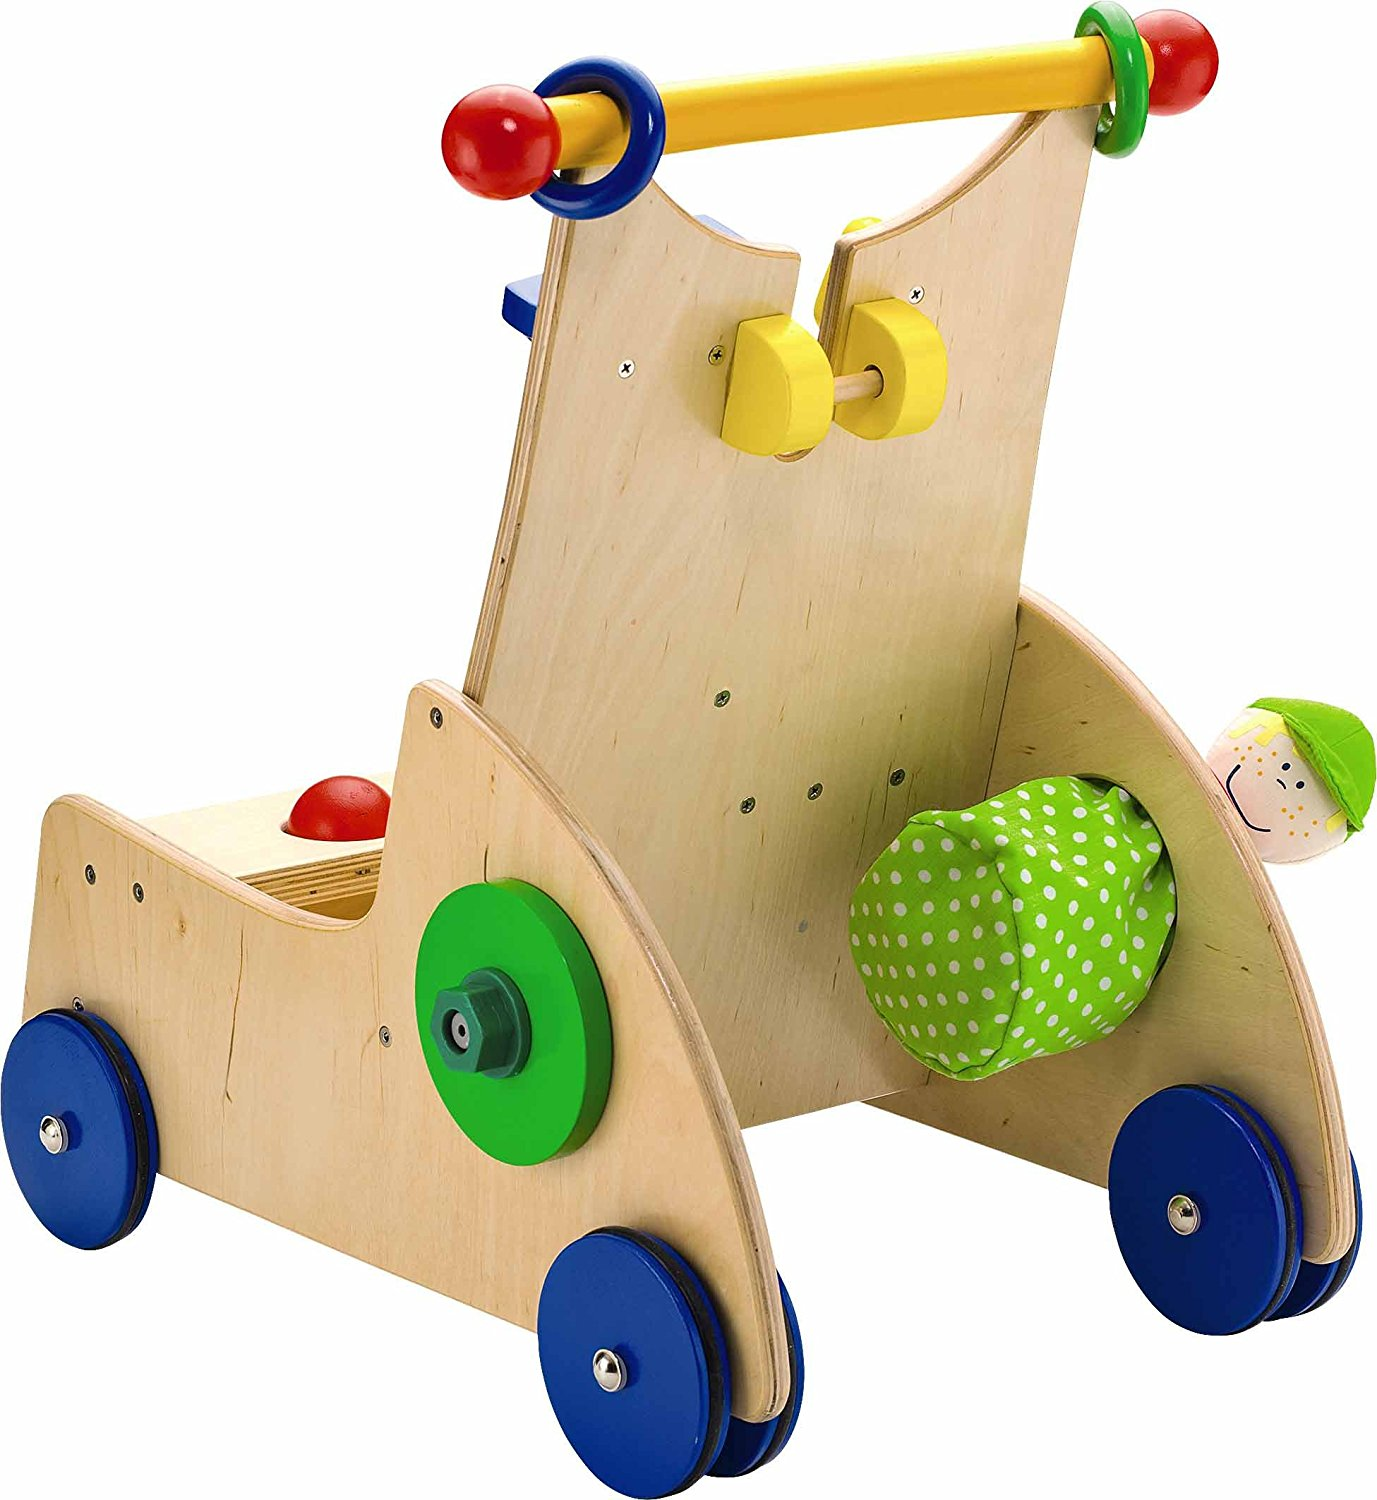 the 5 best wooden baby walkers reviewed *2018*